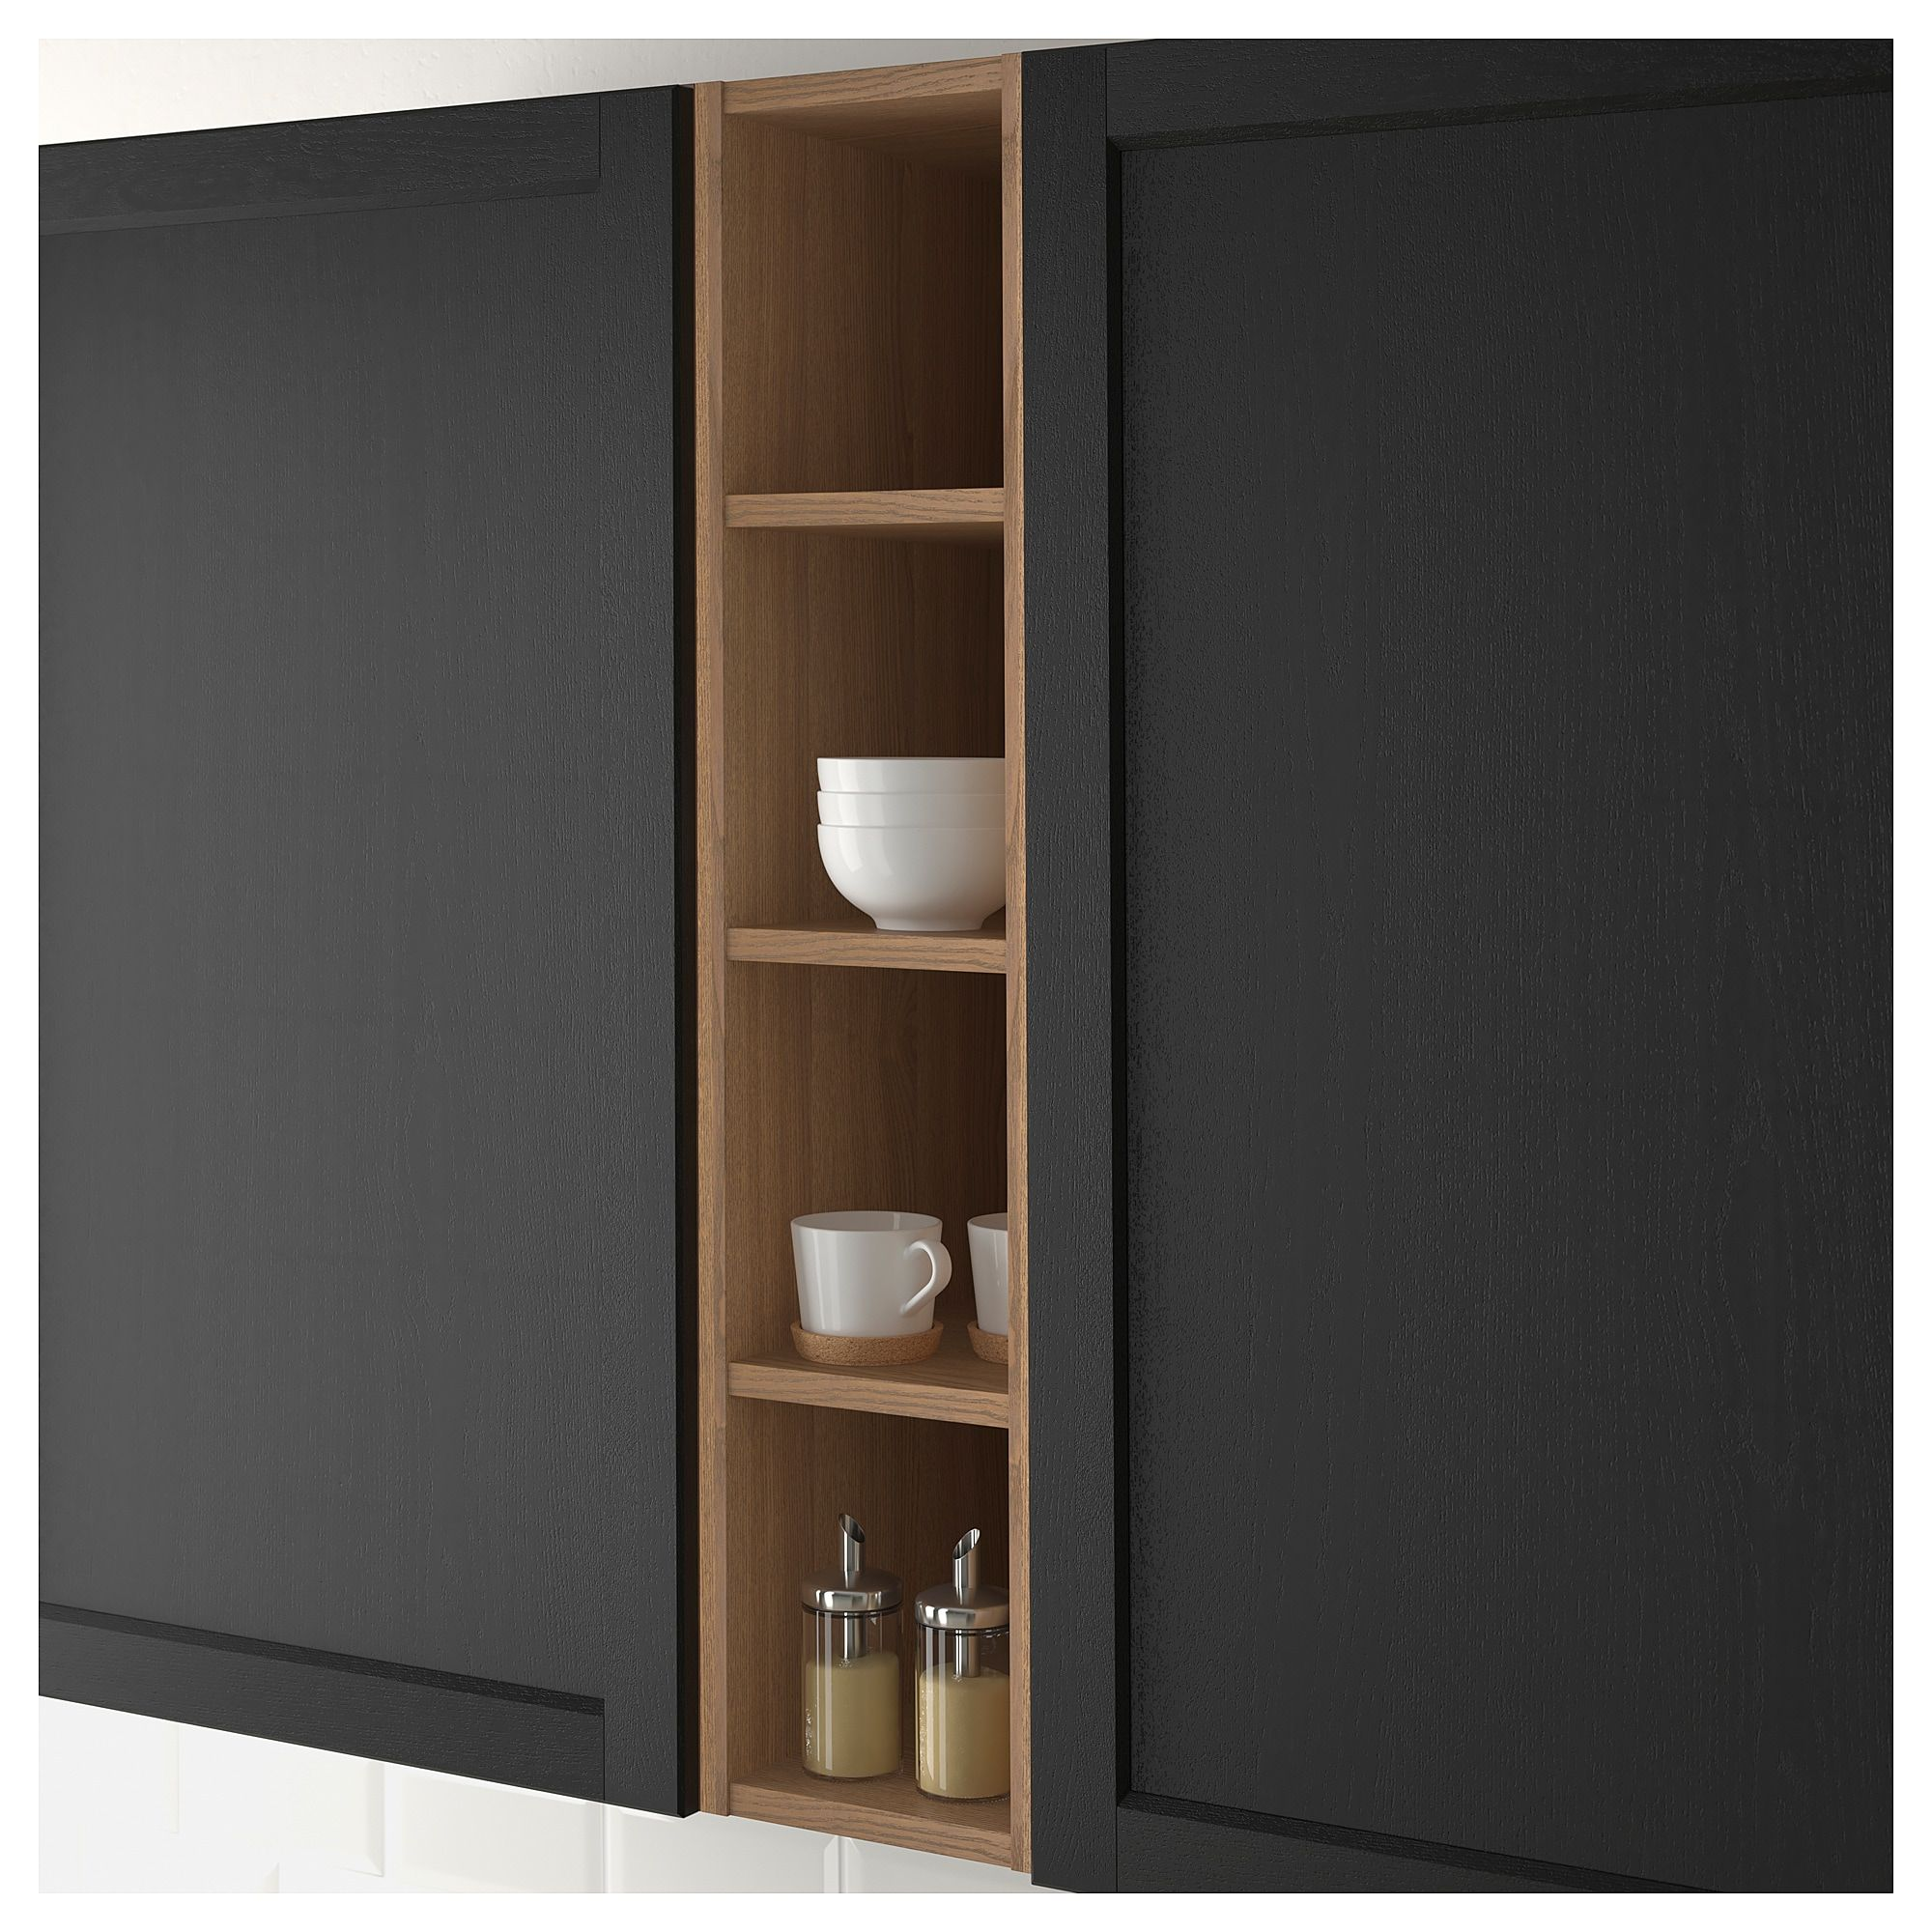 Colonna Dispensa Cucina Ikea ikea vadholma brown, stained ash open storage in 2020 | diy